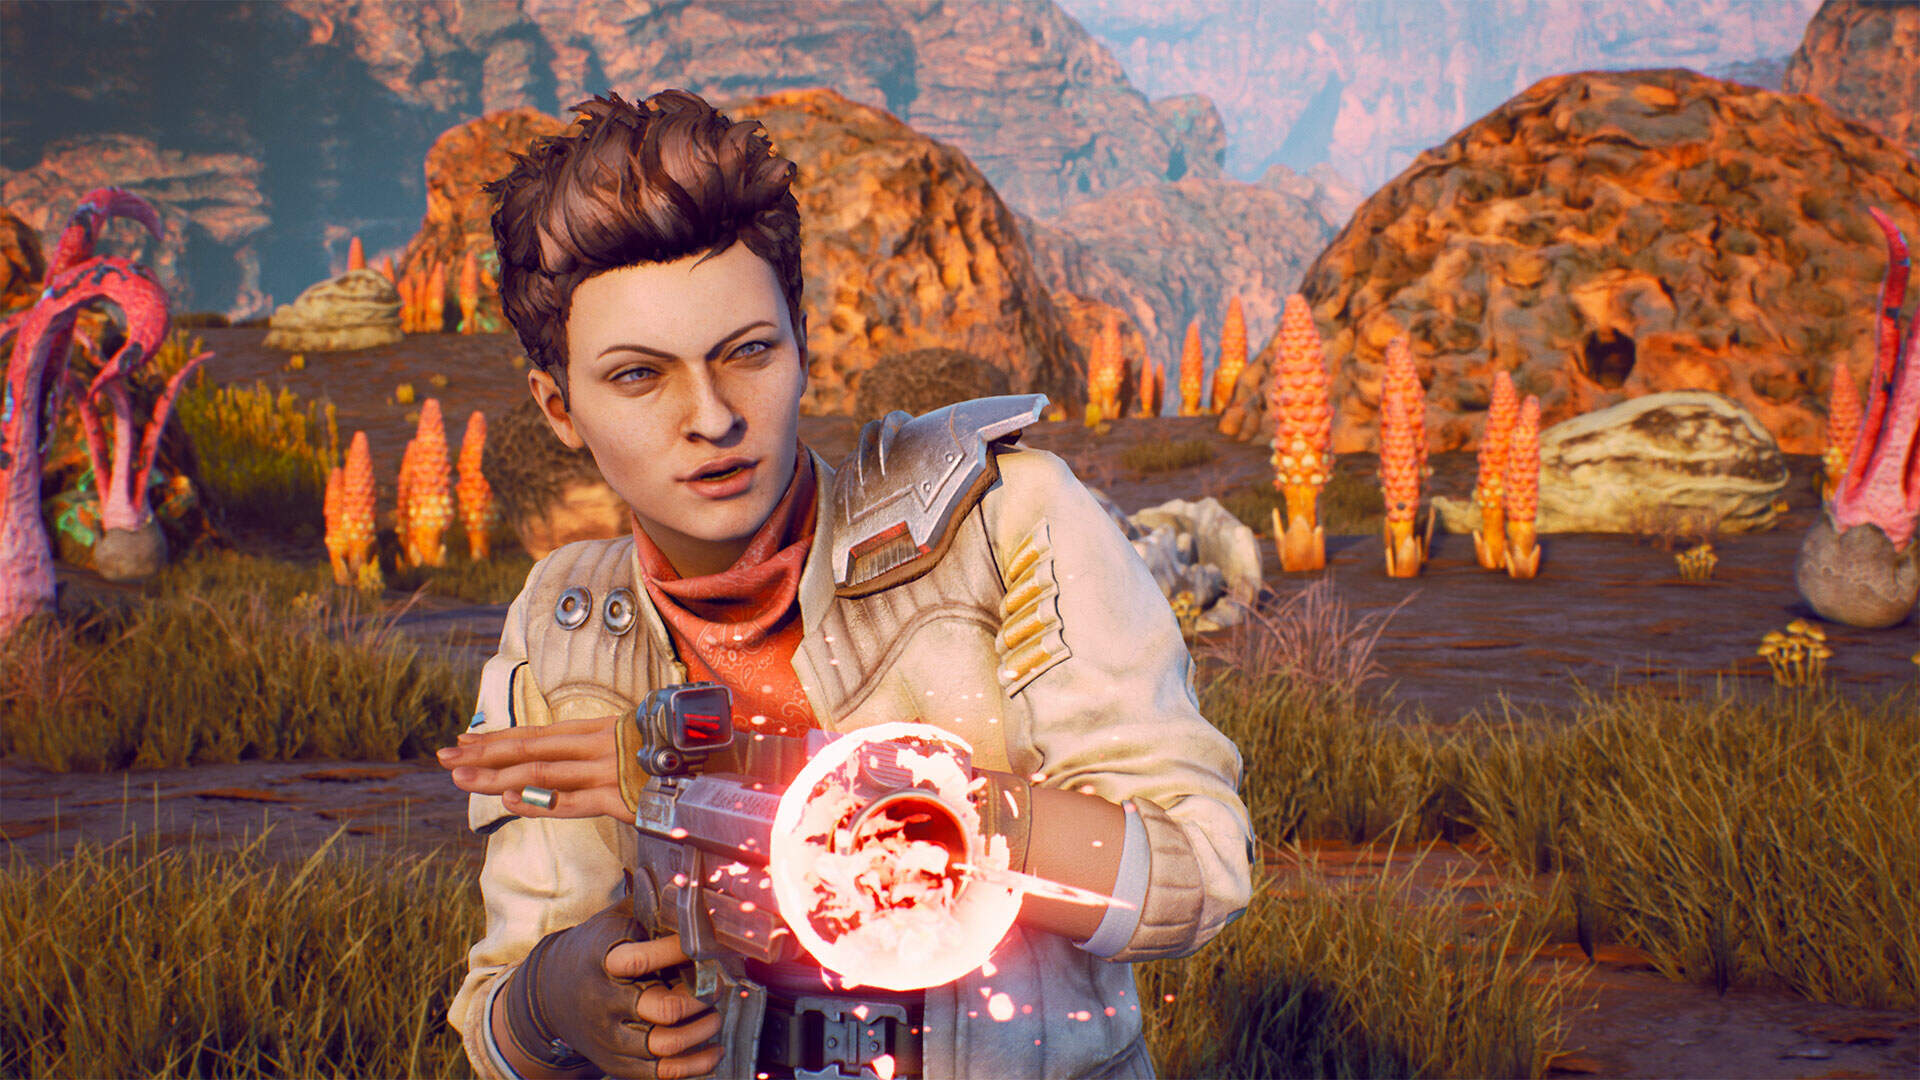 The Outer Worlds Gets a New Nintendo Switch Release Date After Delay